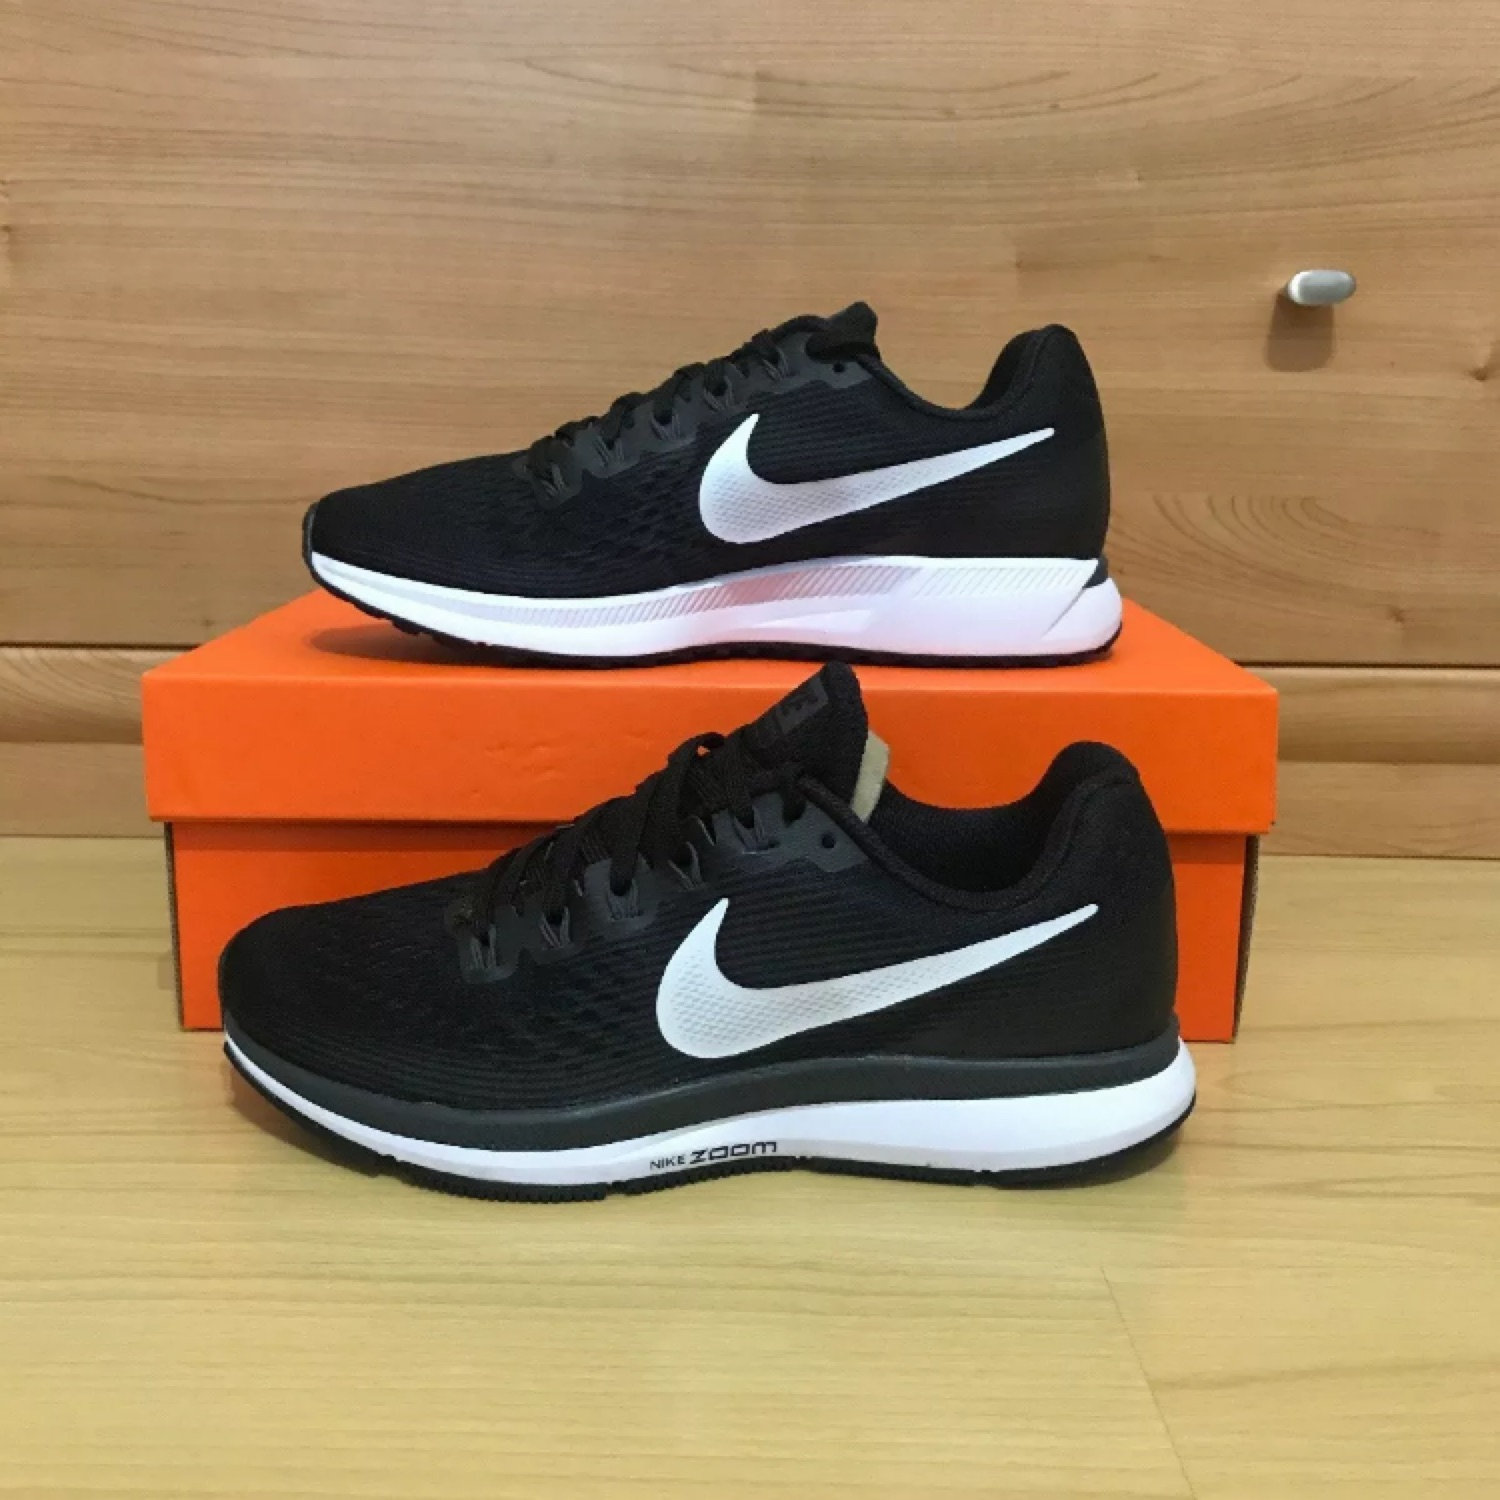 Nike Women's BlackWhite Air Zoom Pegasus 34 Uk 5